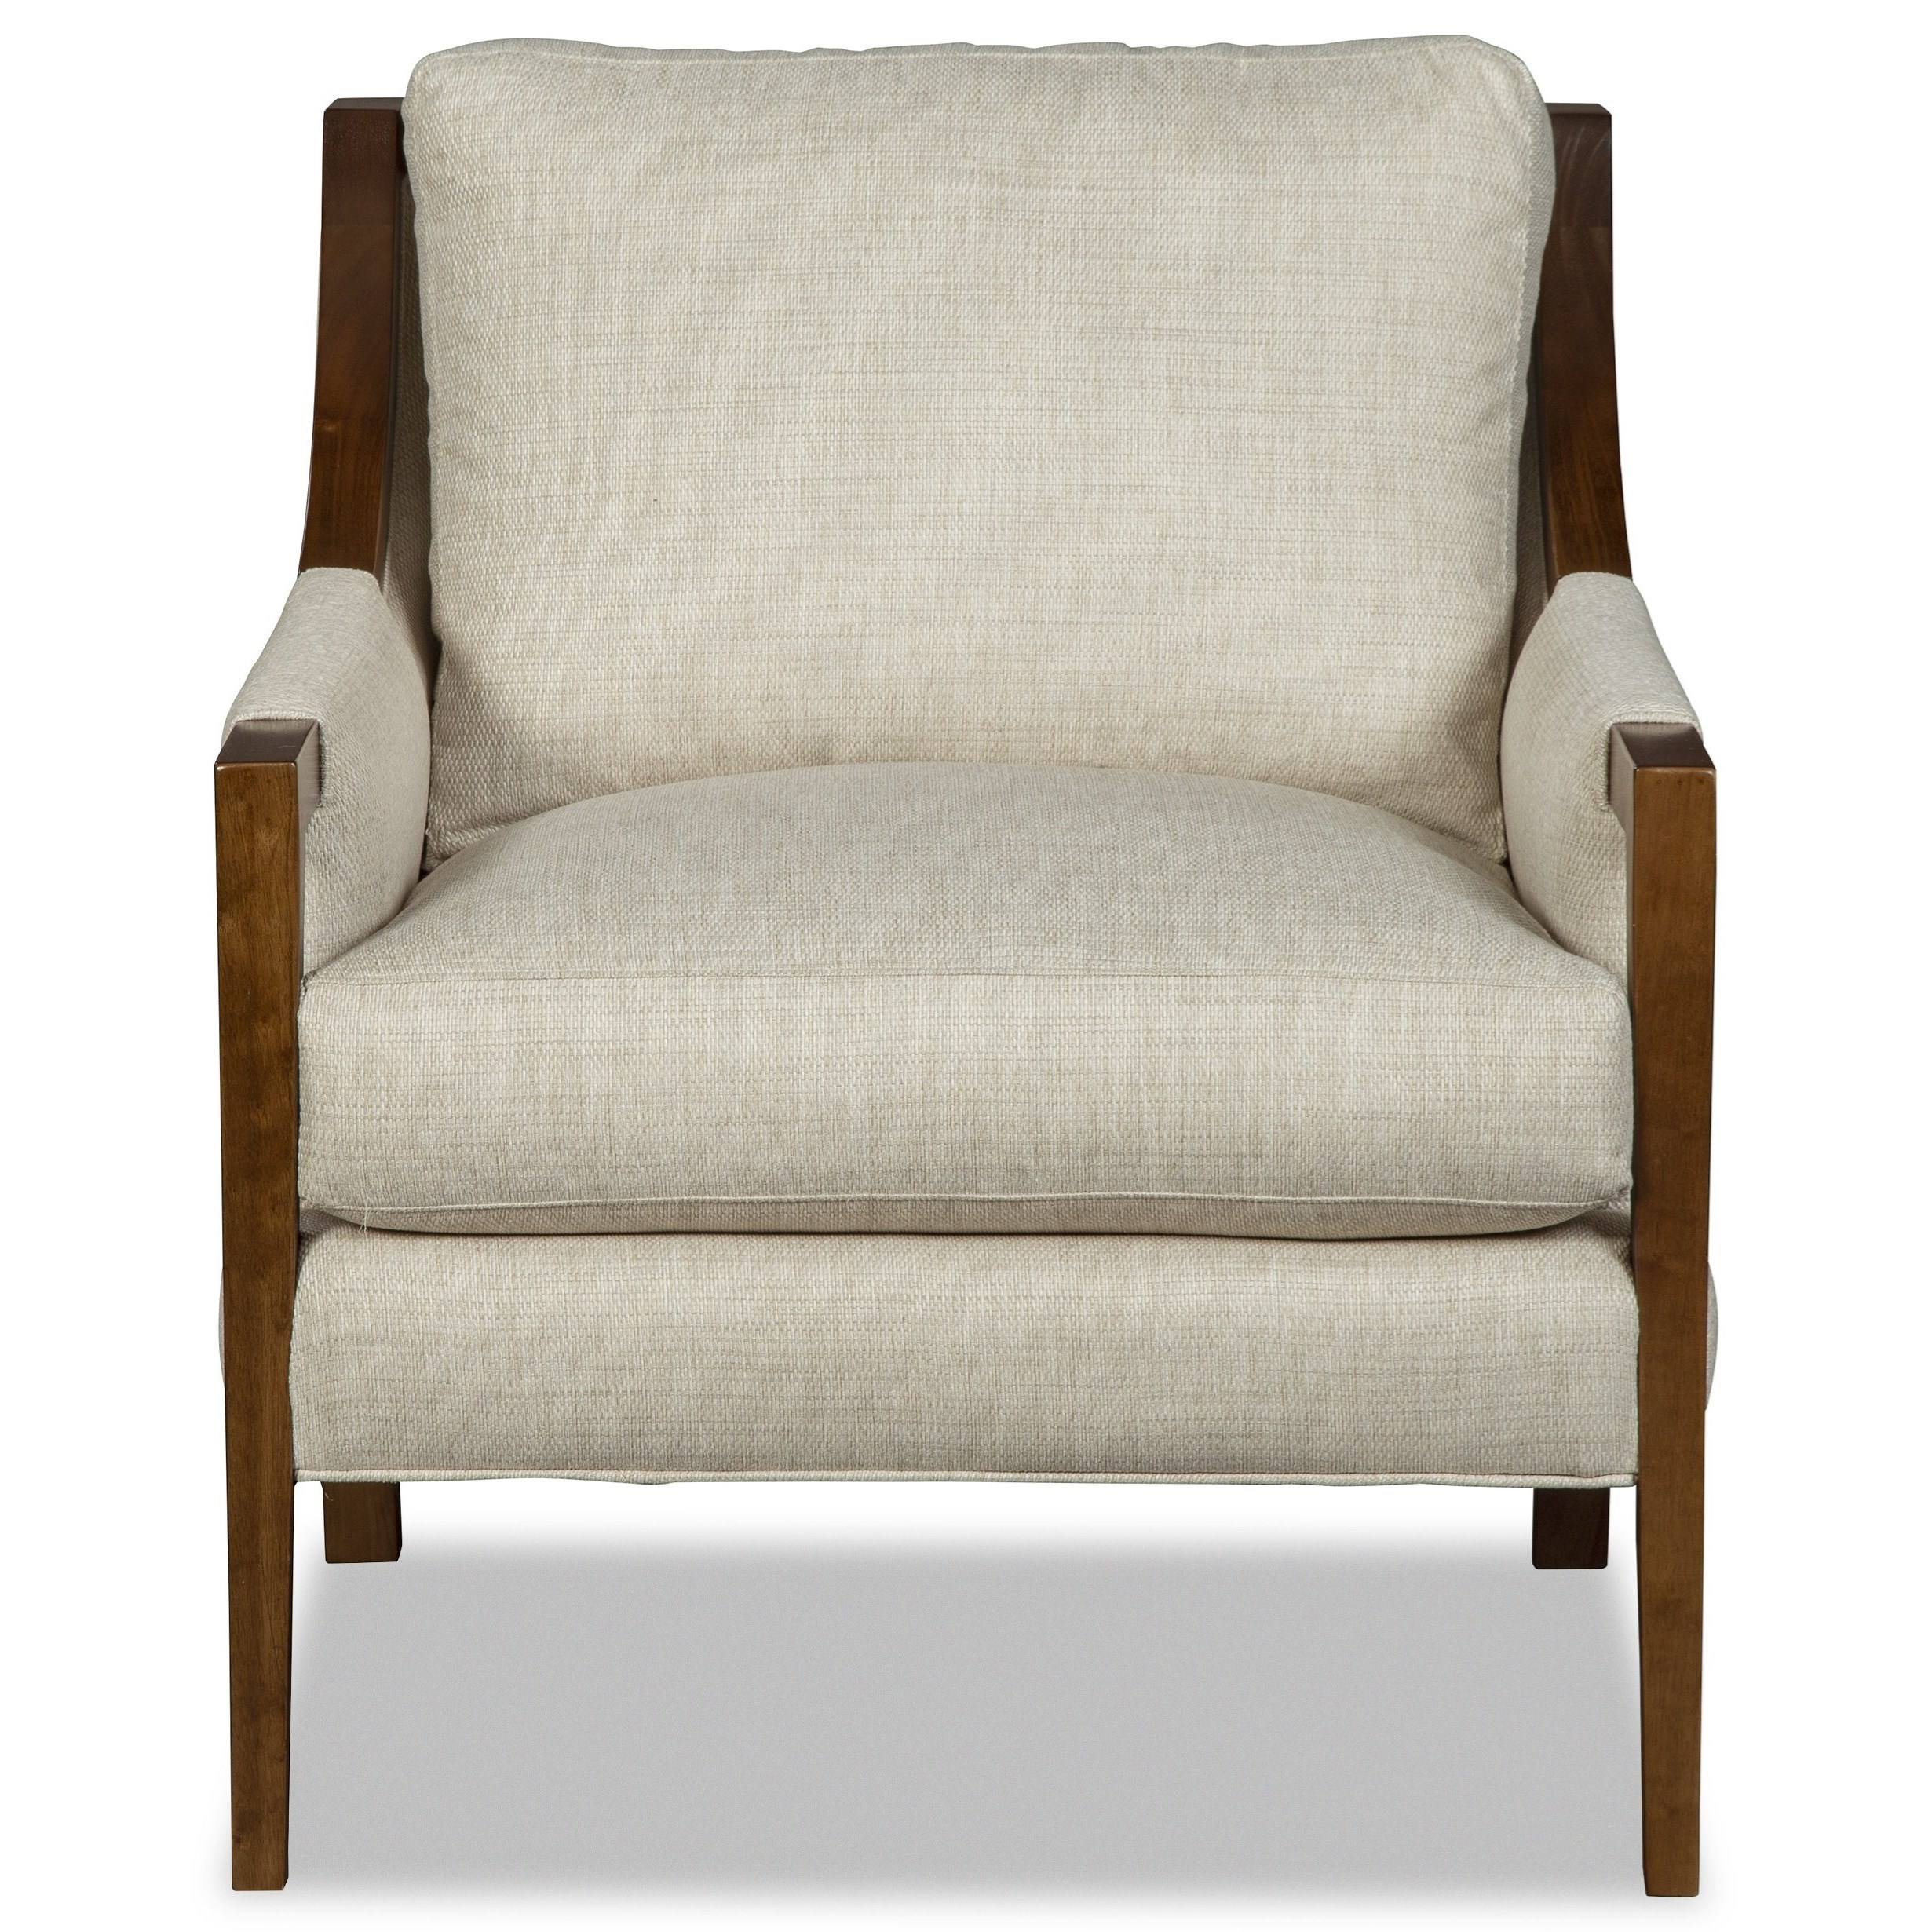 002910 Chair by Craftmaster at Suburban Furniture